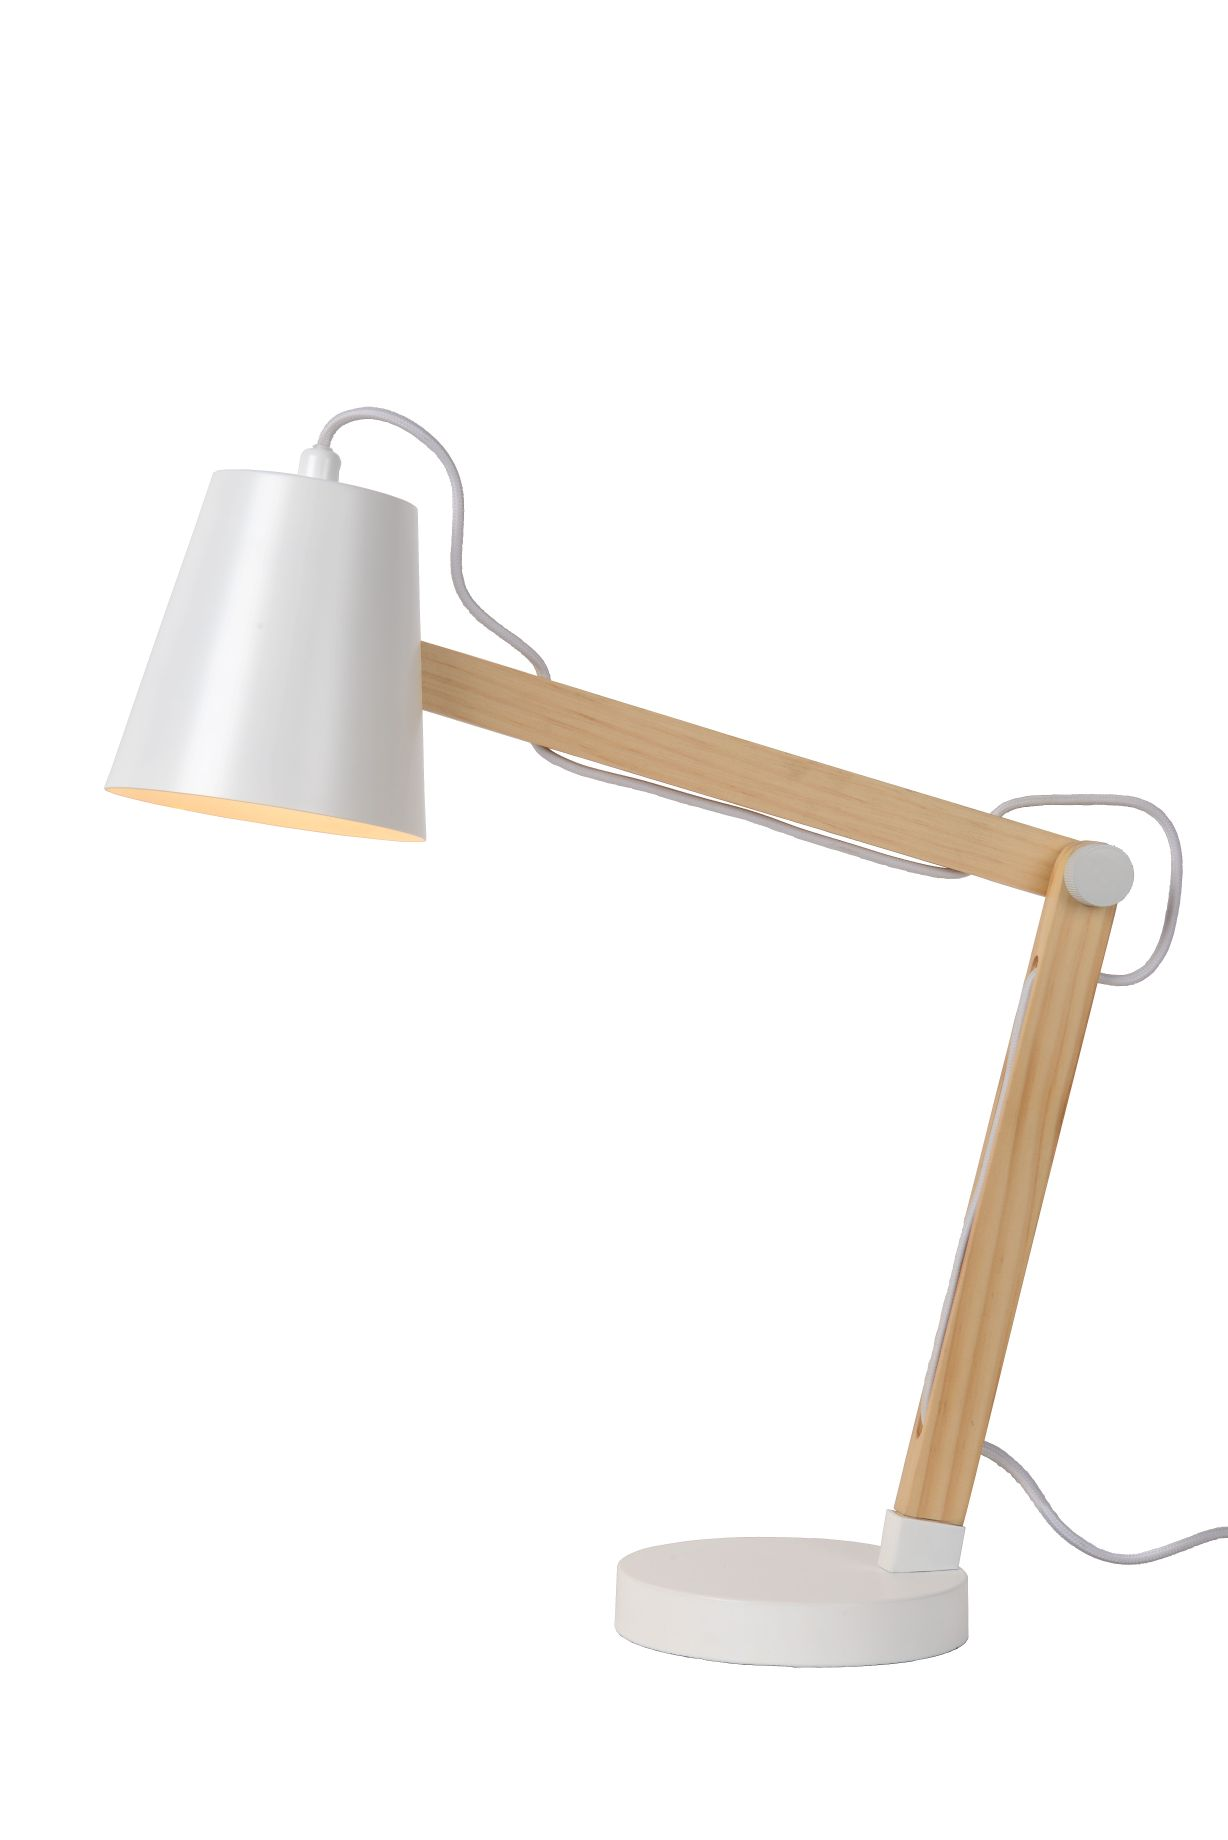 TONY Desk lamp E14 L41 W14 H69cm White